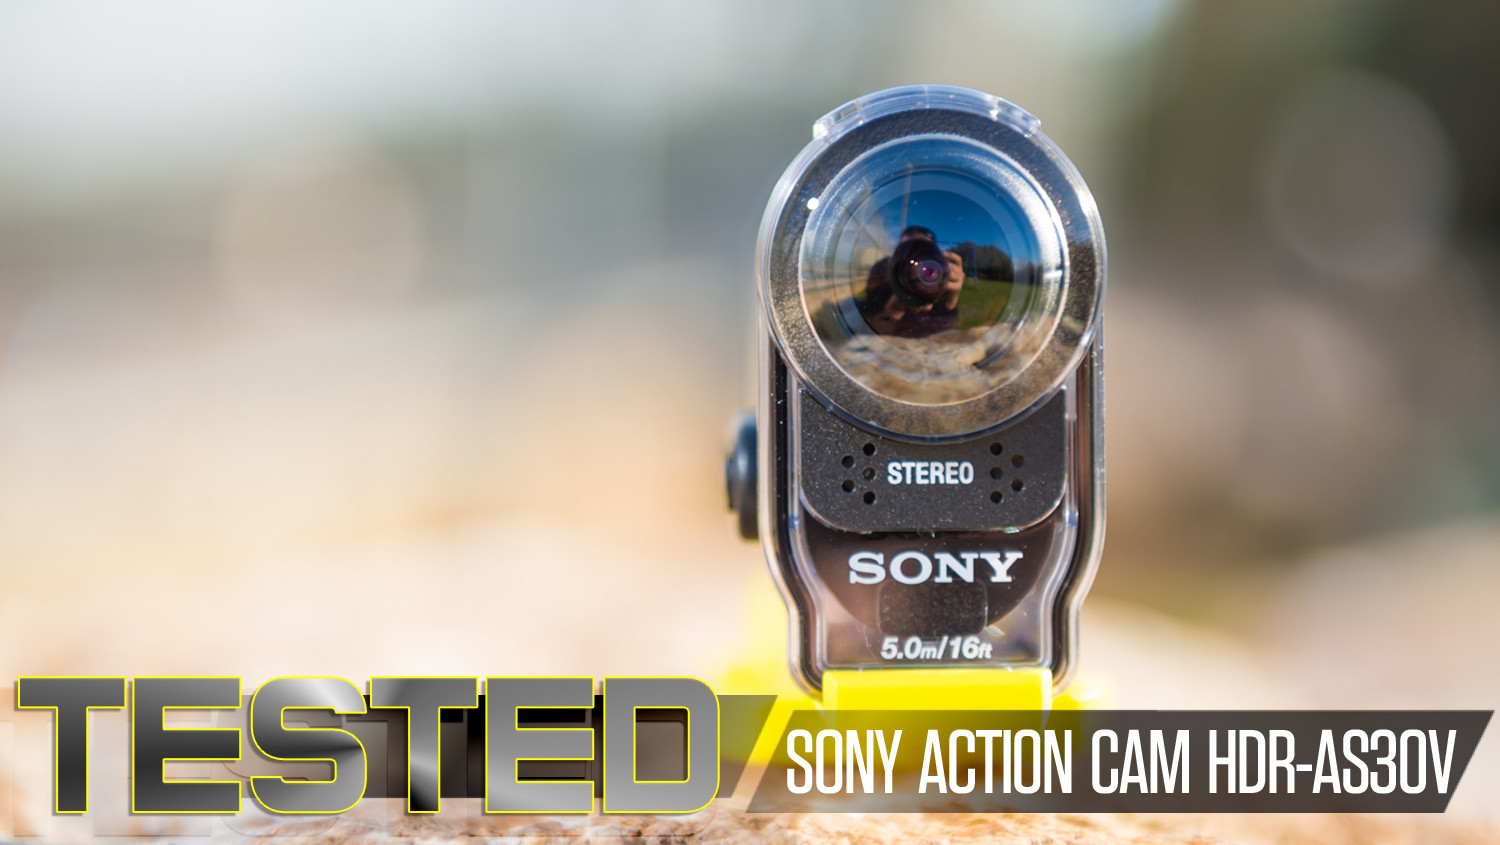 Camera Gopro Hero Vs Sony Action Cam sony action cam hdr as30v reviews comparisons specs mountain testing it to see if has managed iron out some of the bugs and ultimately whether is a viable contender in marke